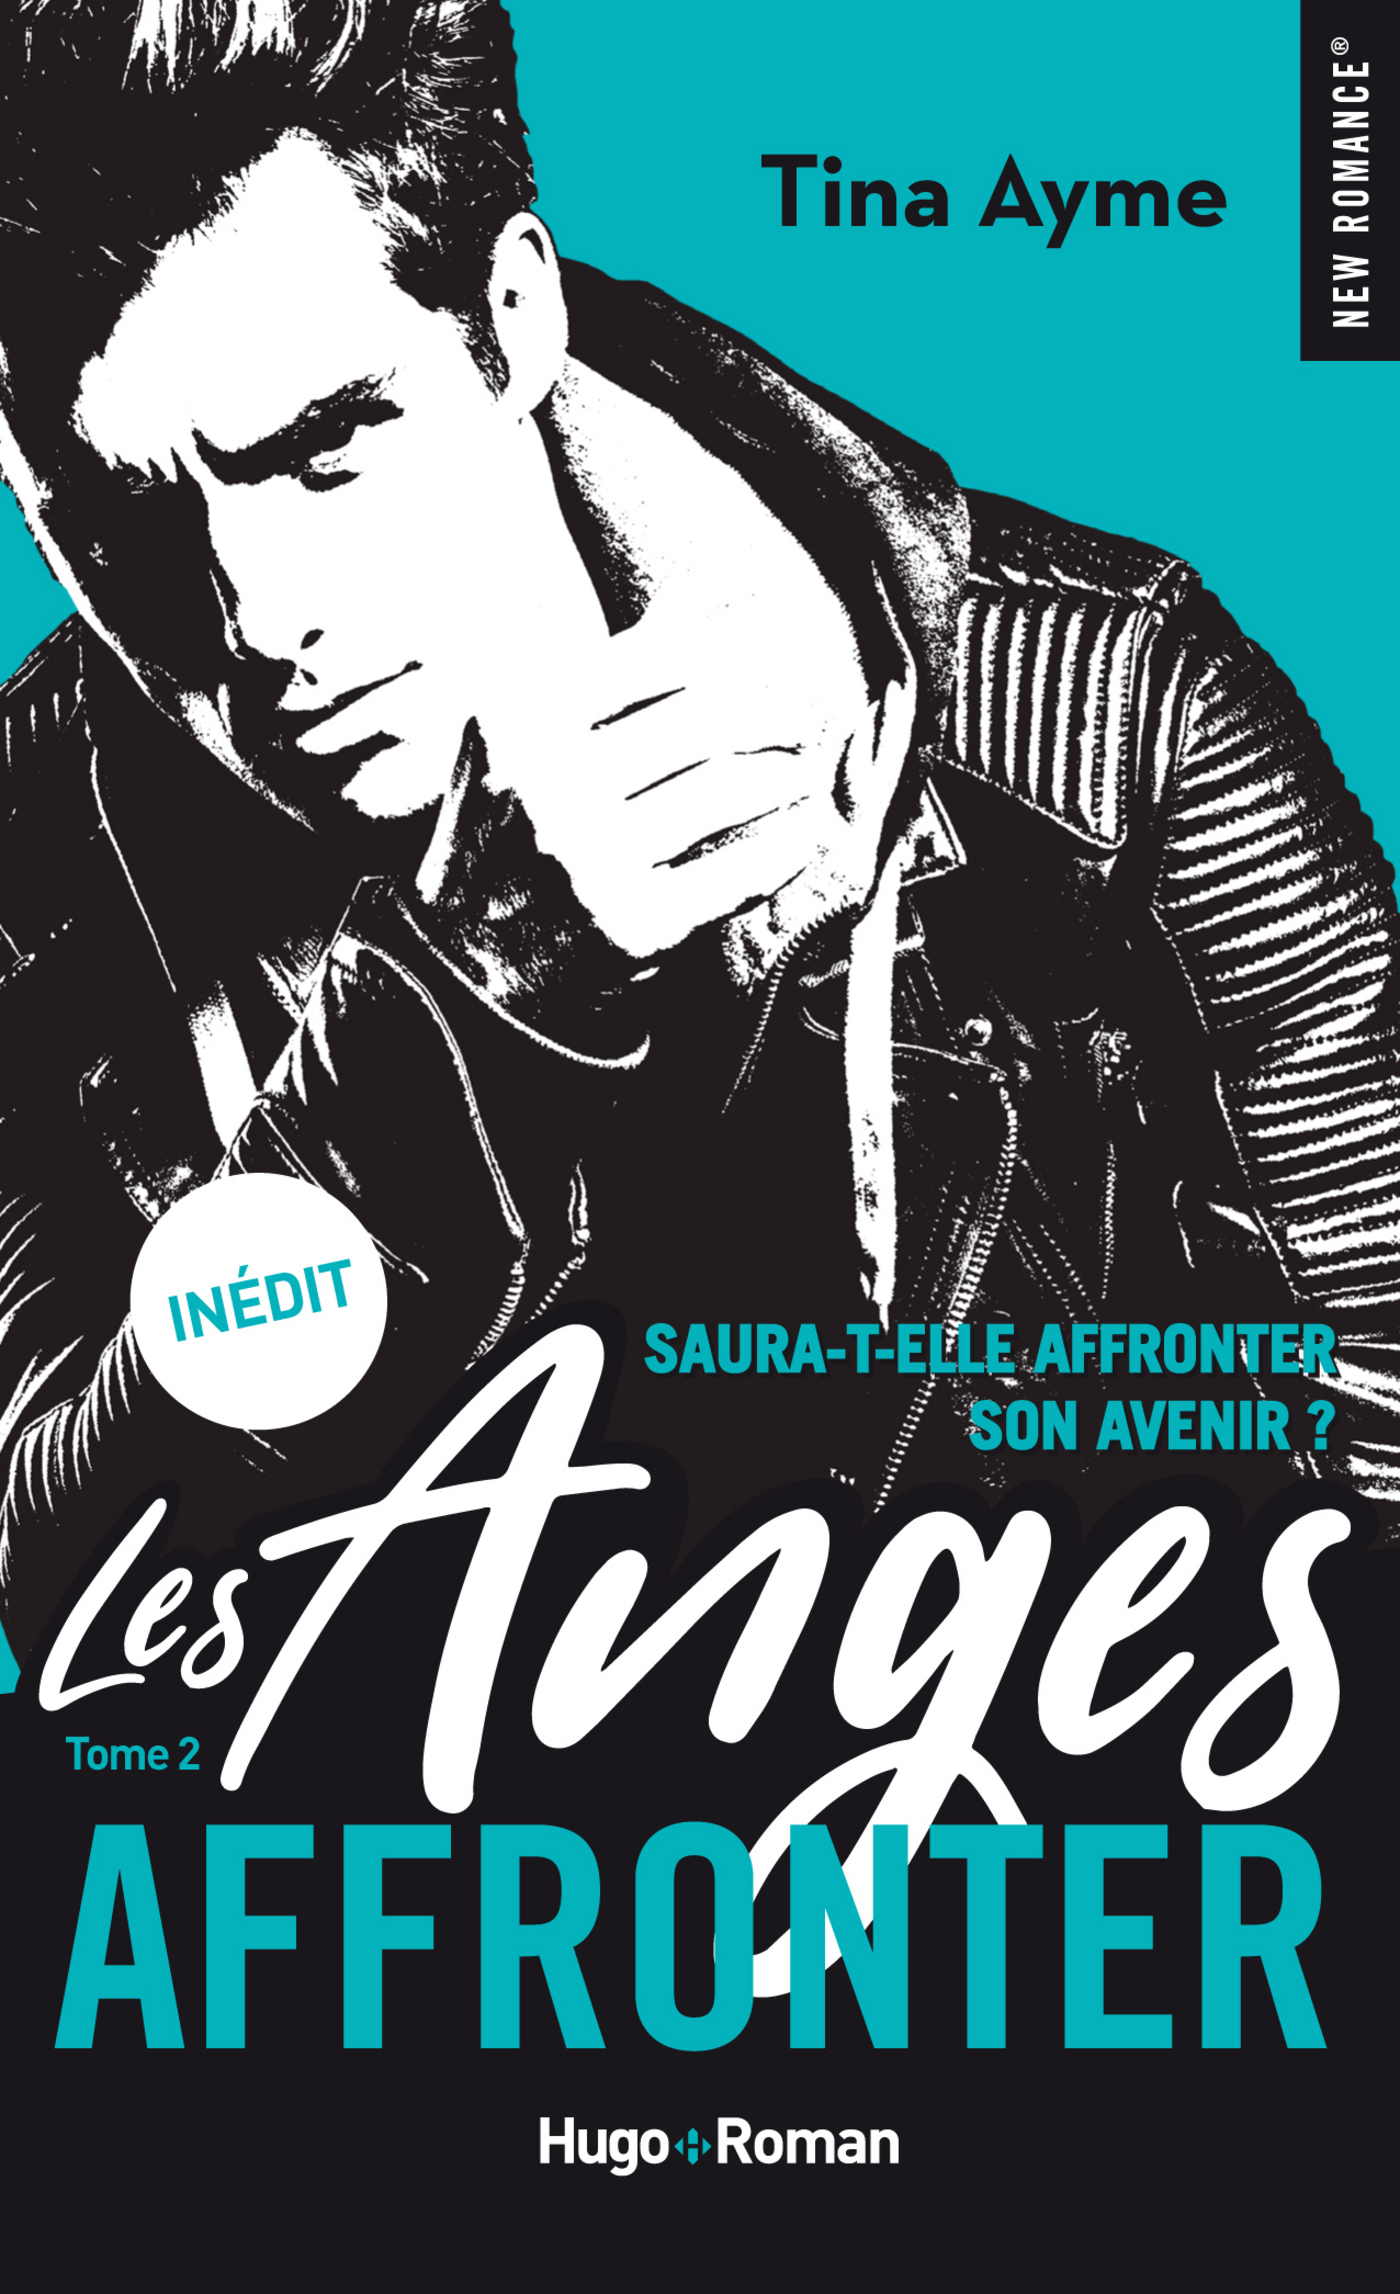 Les anges - tome 2 Affronter